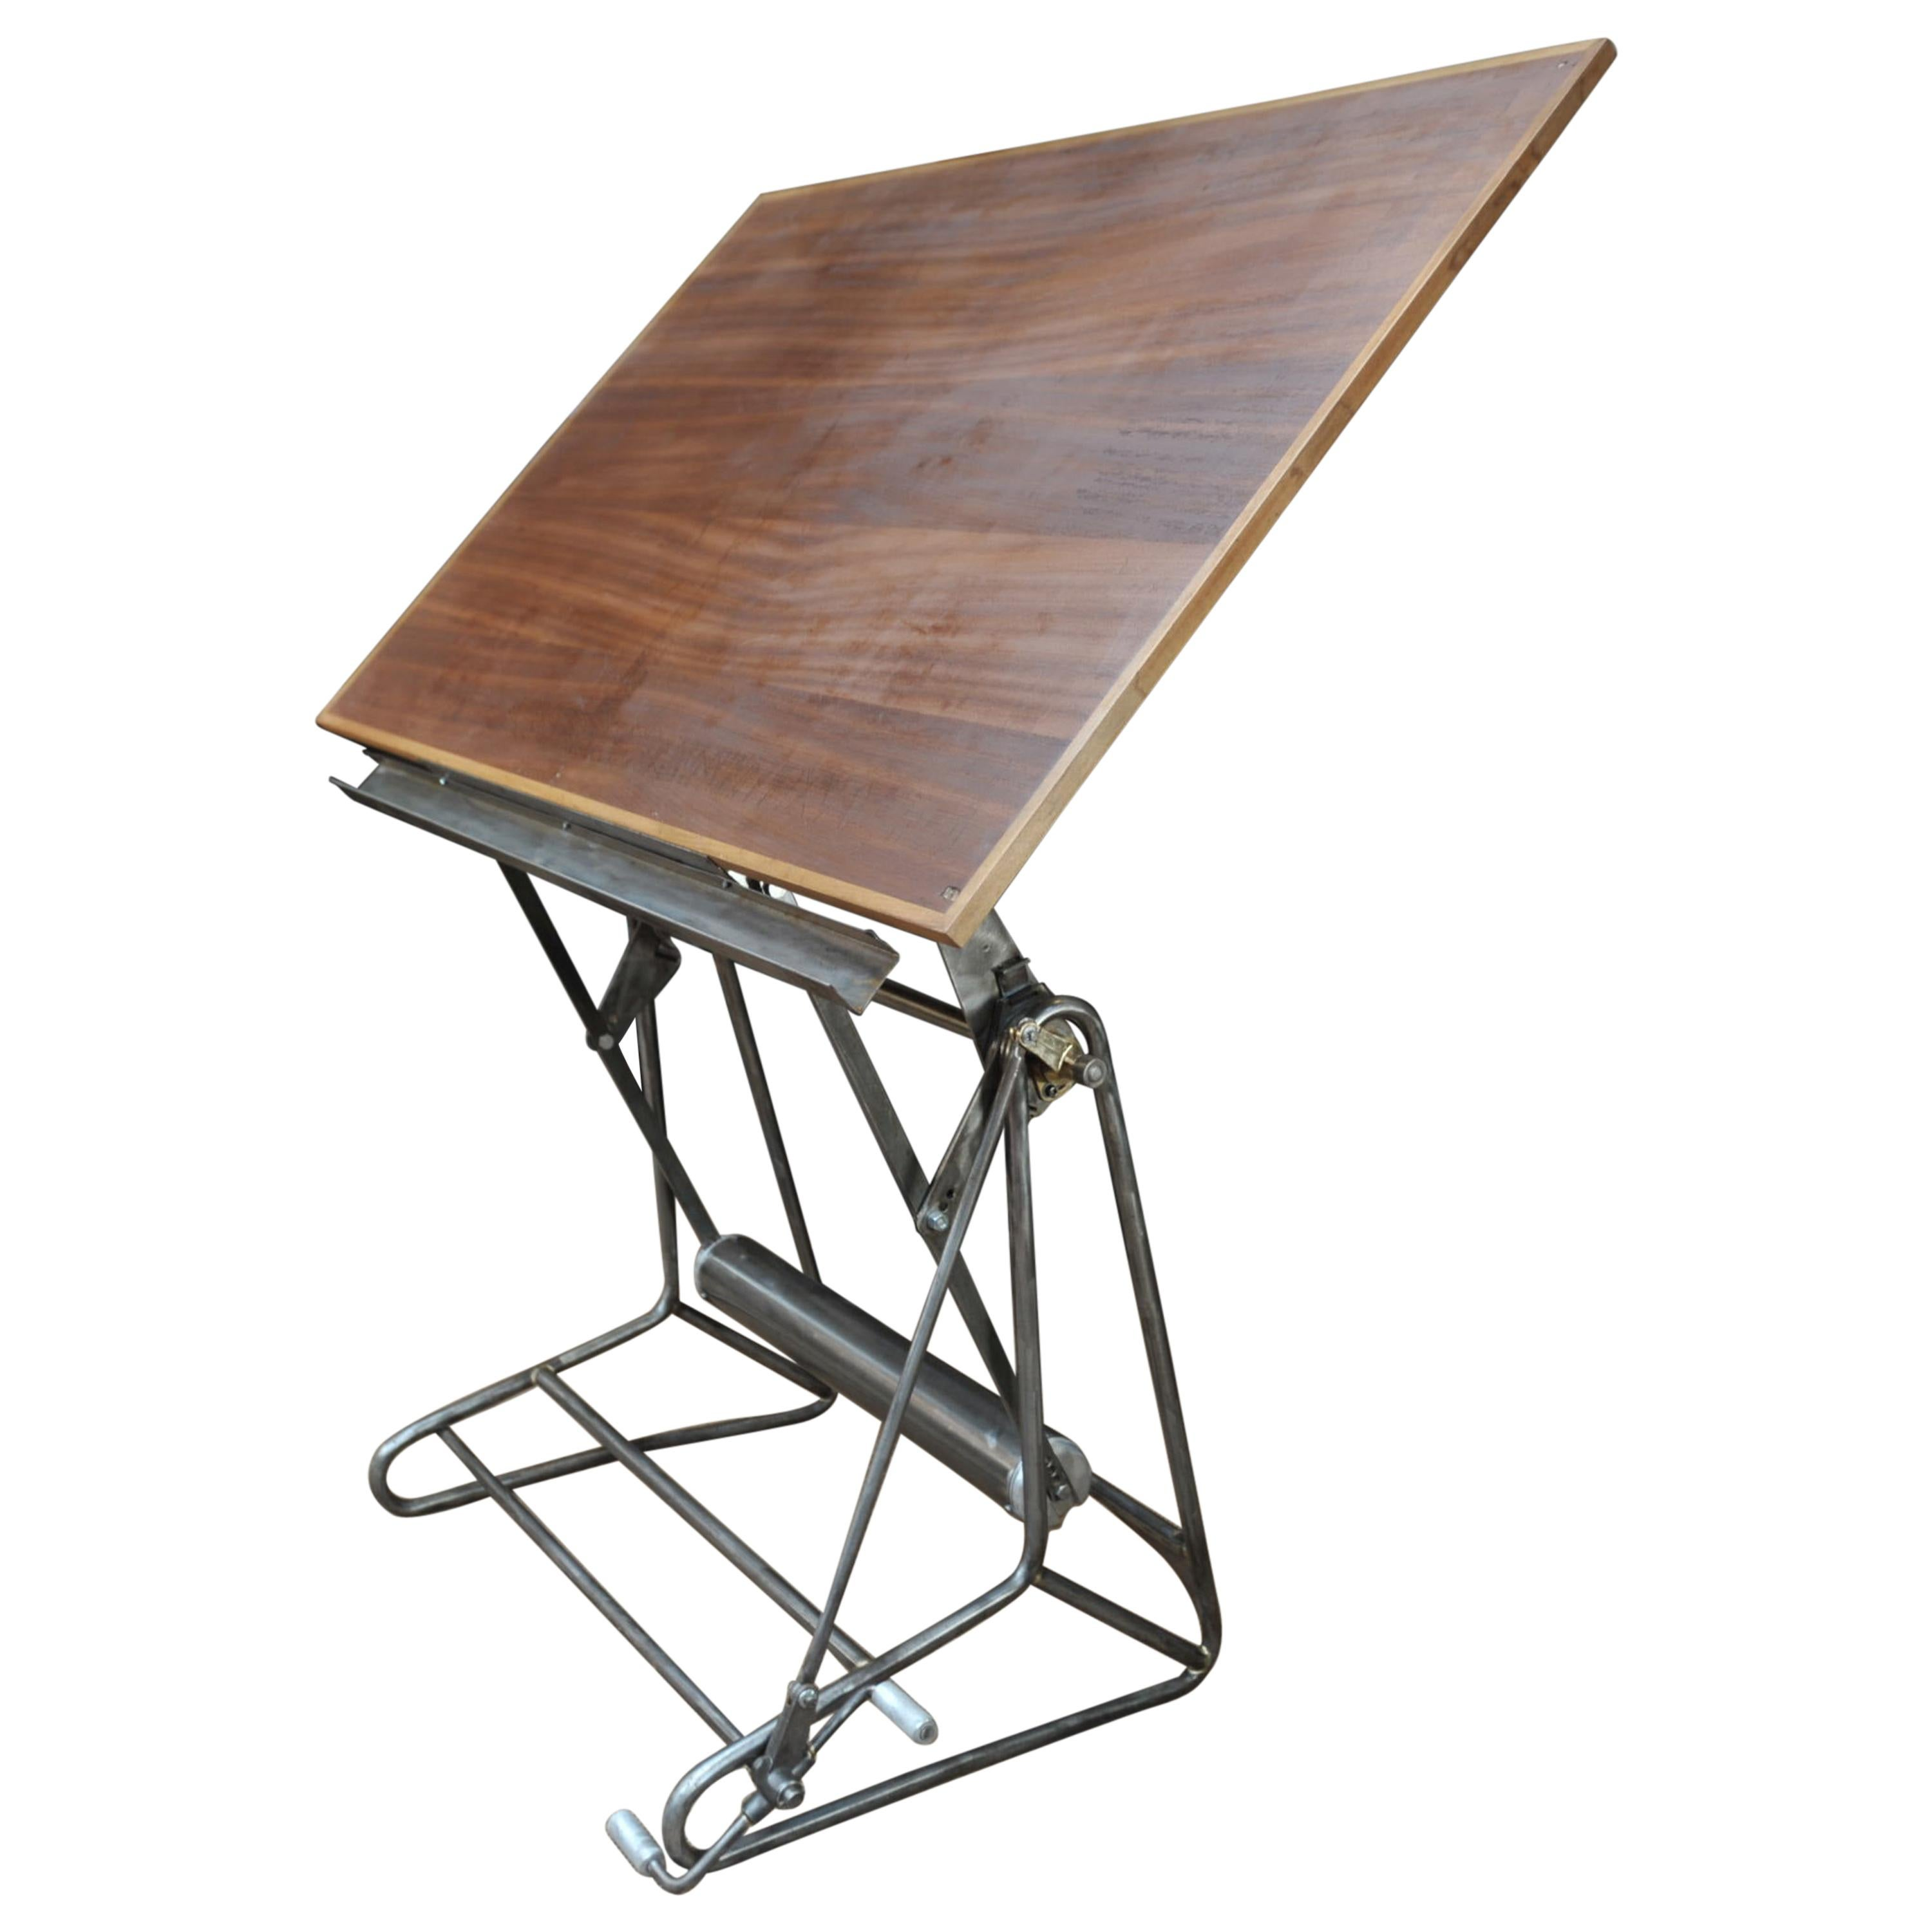 Iron and Wood Adjustable Architect's Drafting Desk Table, 1905s